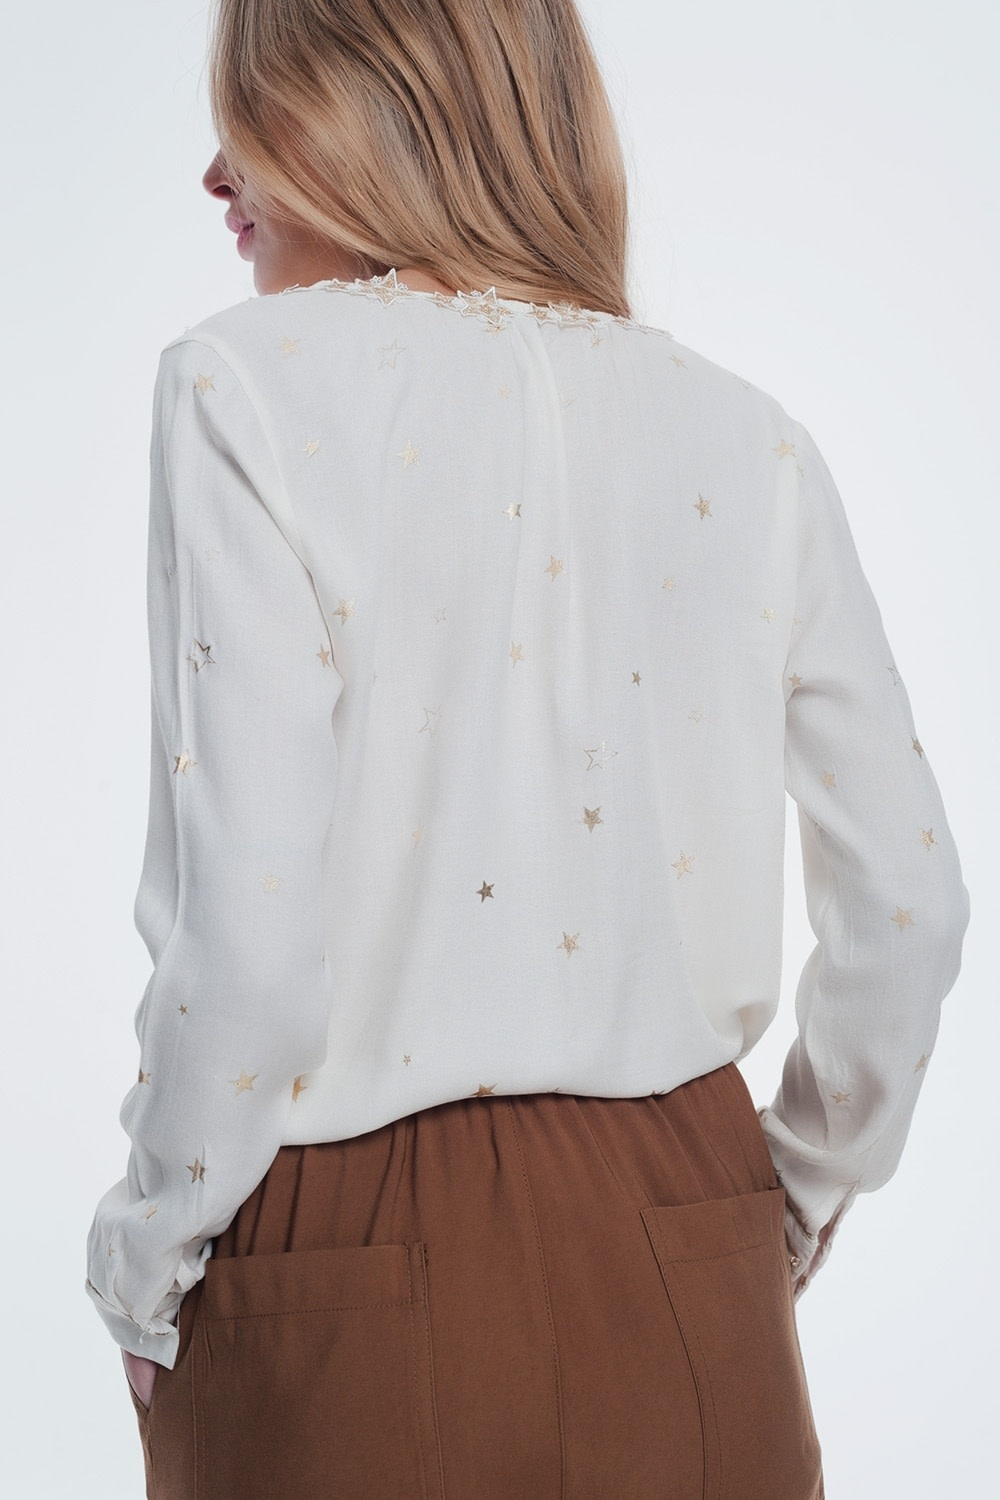 Seek The Label Stars Embroidered Blouse